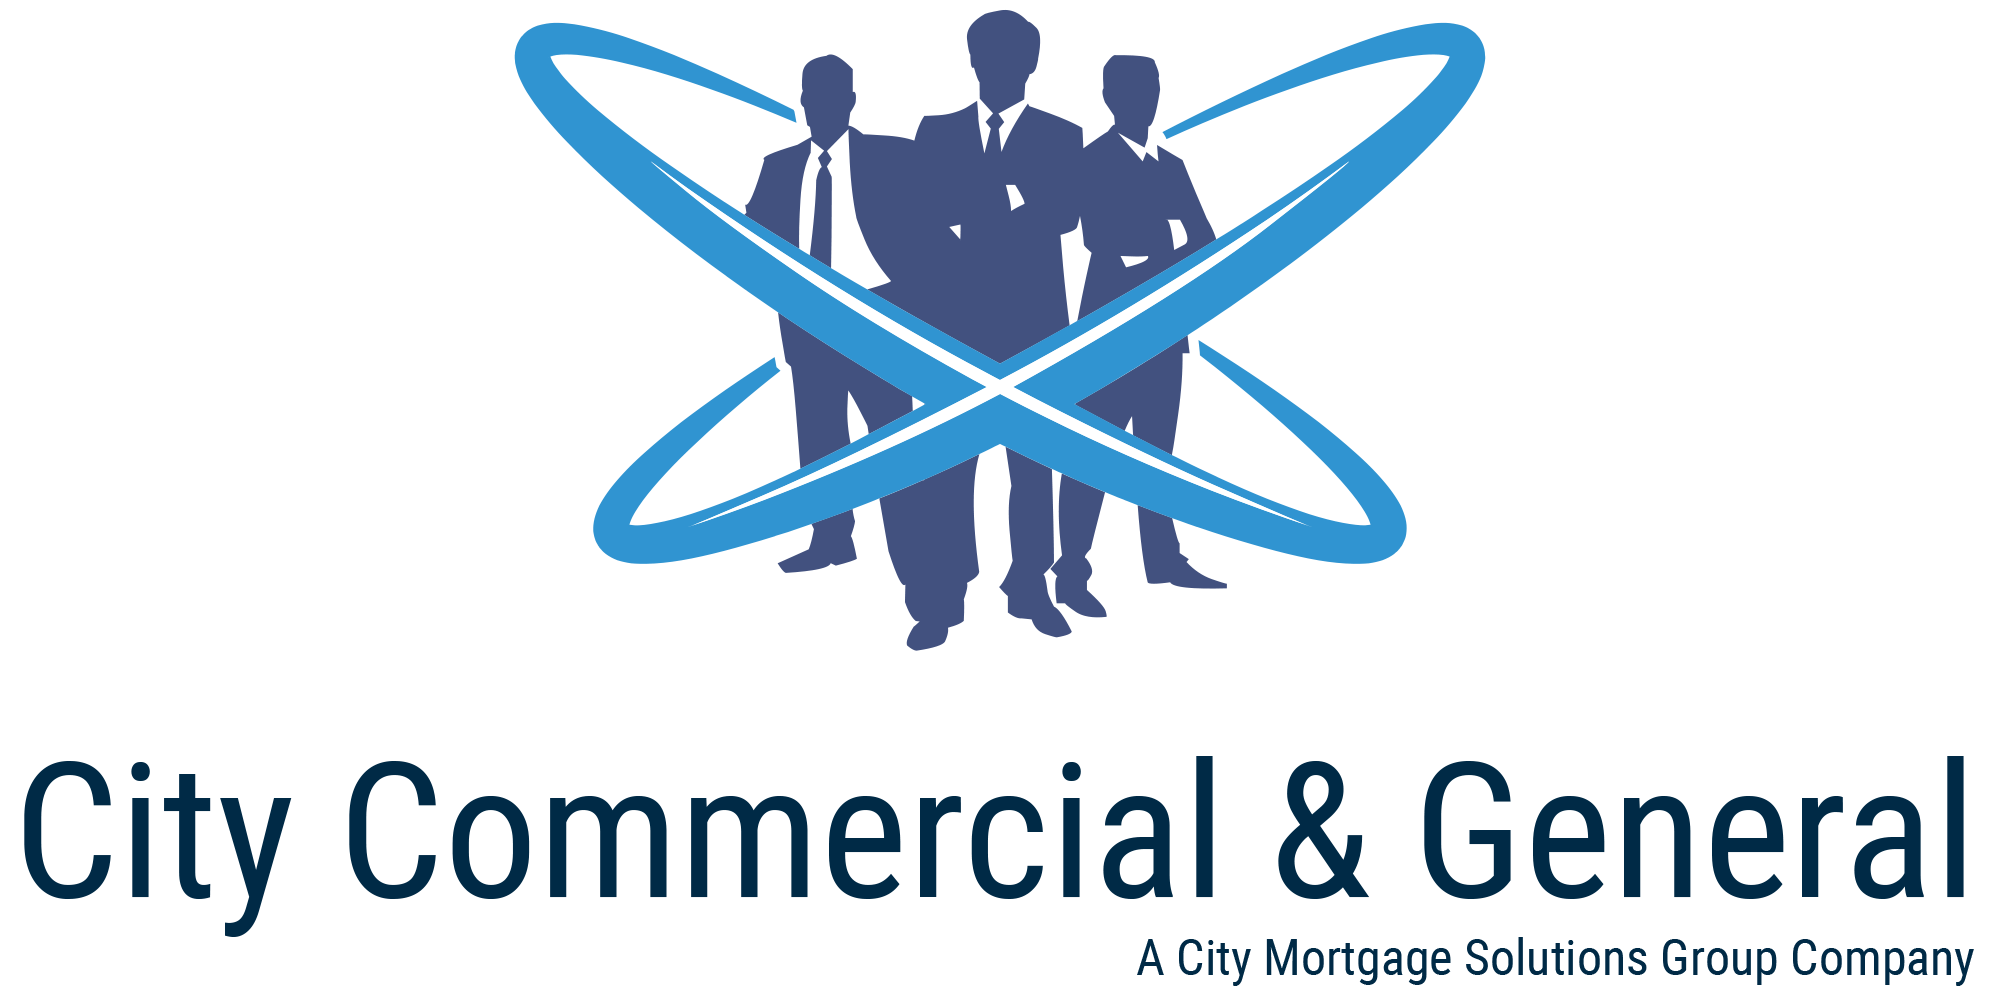 City Commercial & General